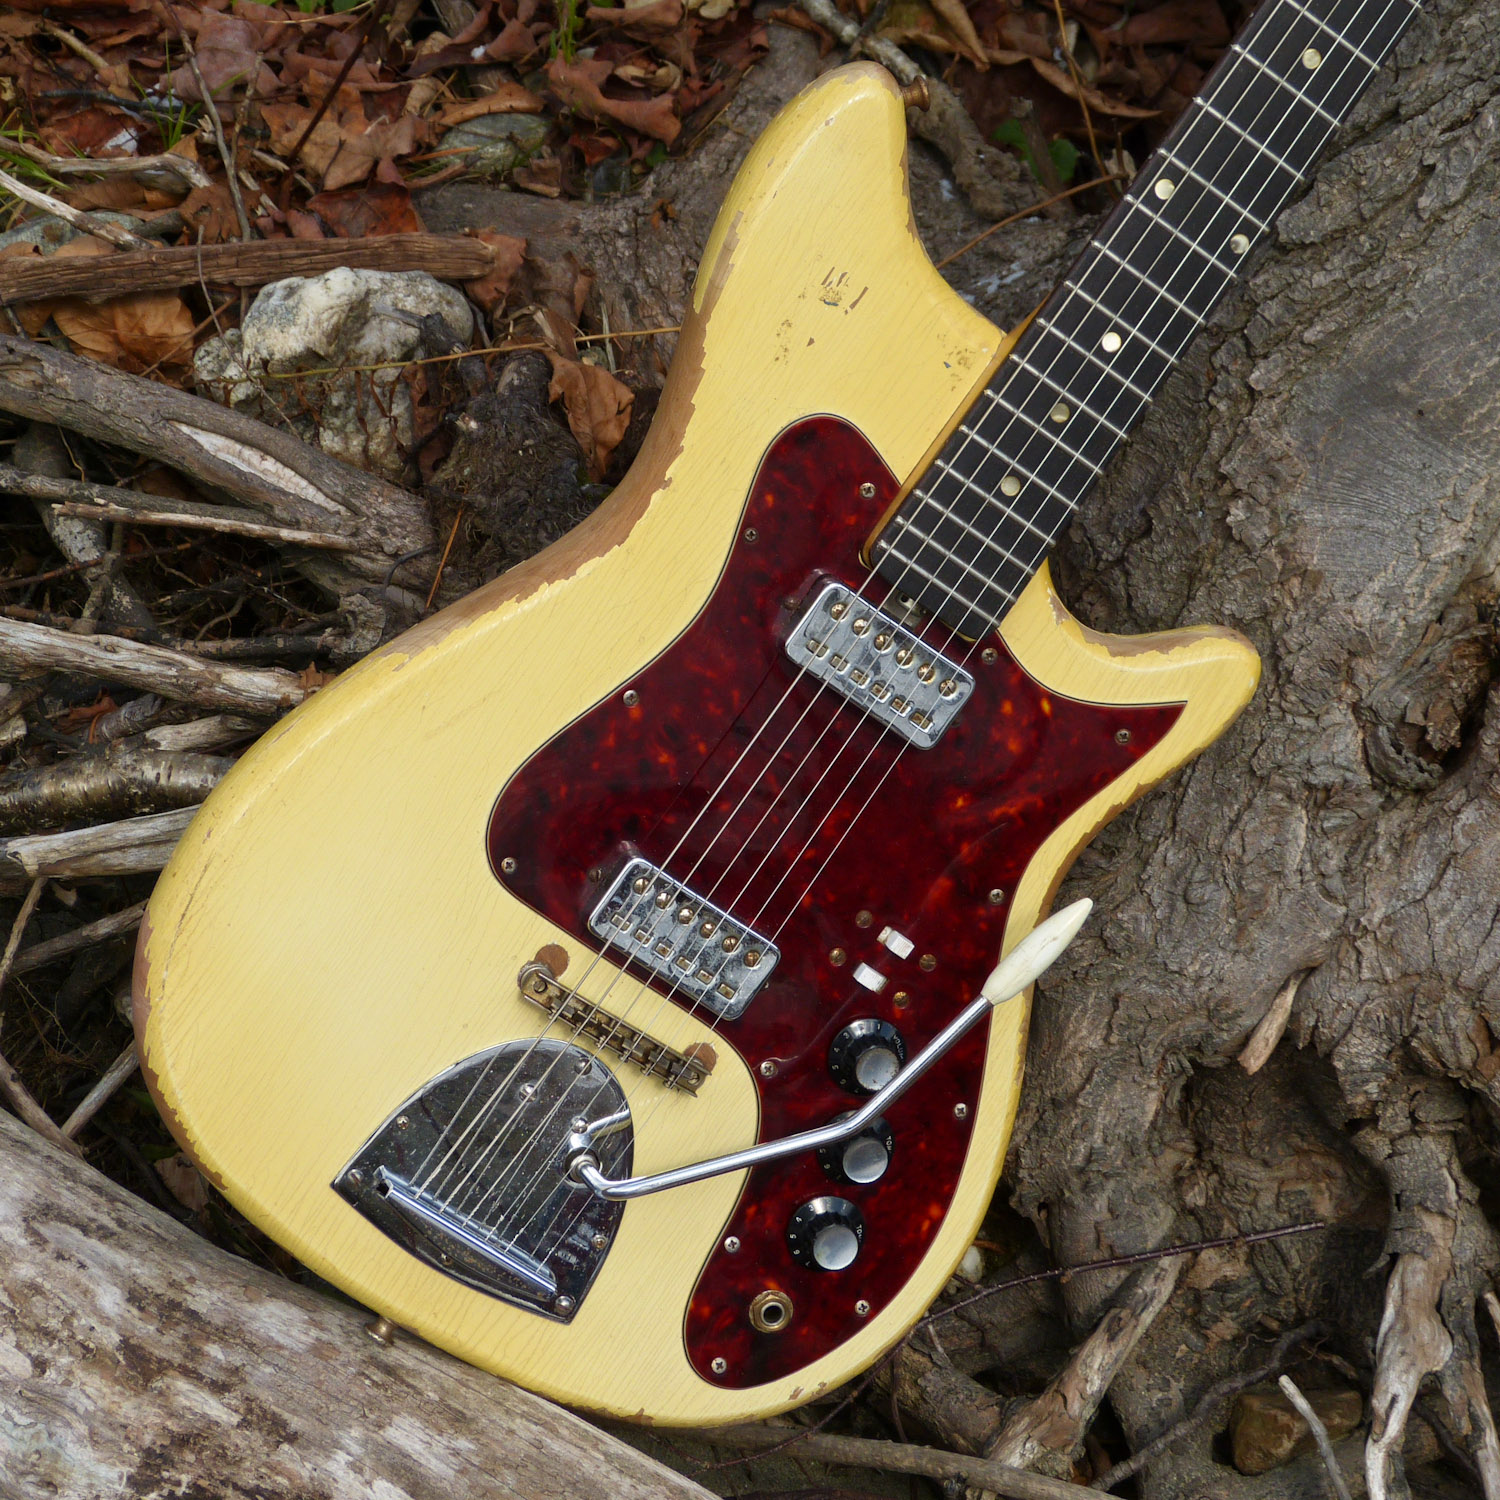 Jake Wildwood 1960s Kapa Continental Electric Guitar Hofner Bass Wiring Diagram Bodies Pickguards And Trem Whammy Units Were Made At The Maryland Factory But Necks Bridges Pickups Bought In From Germany